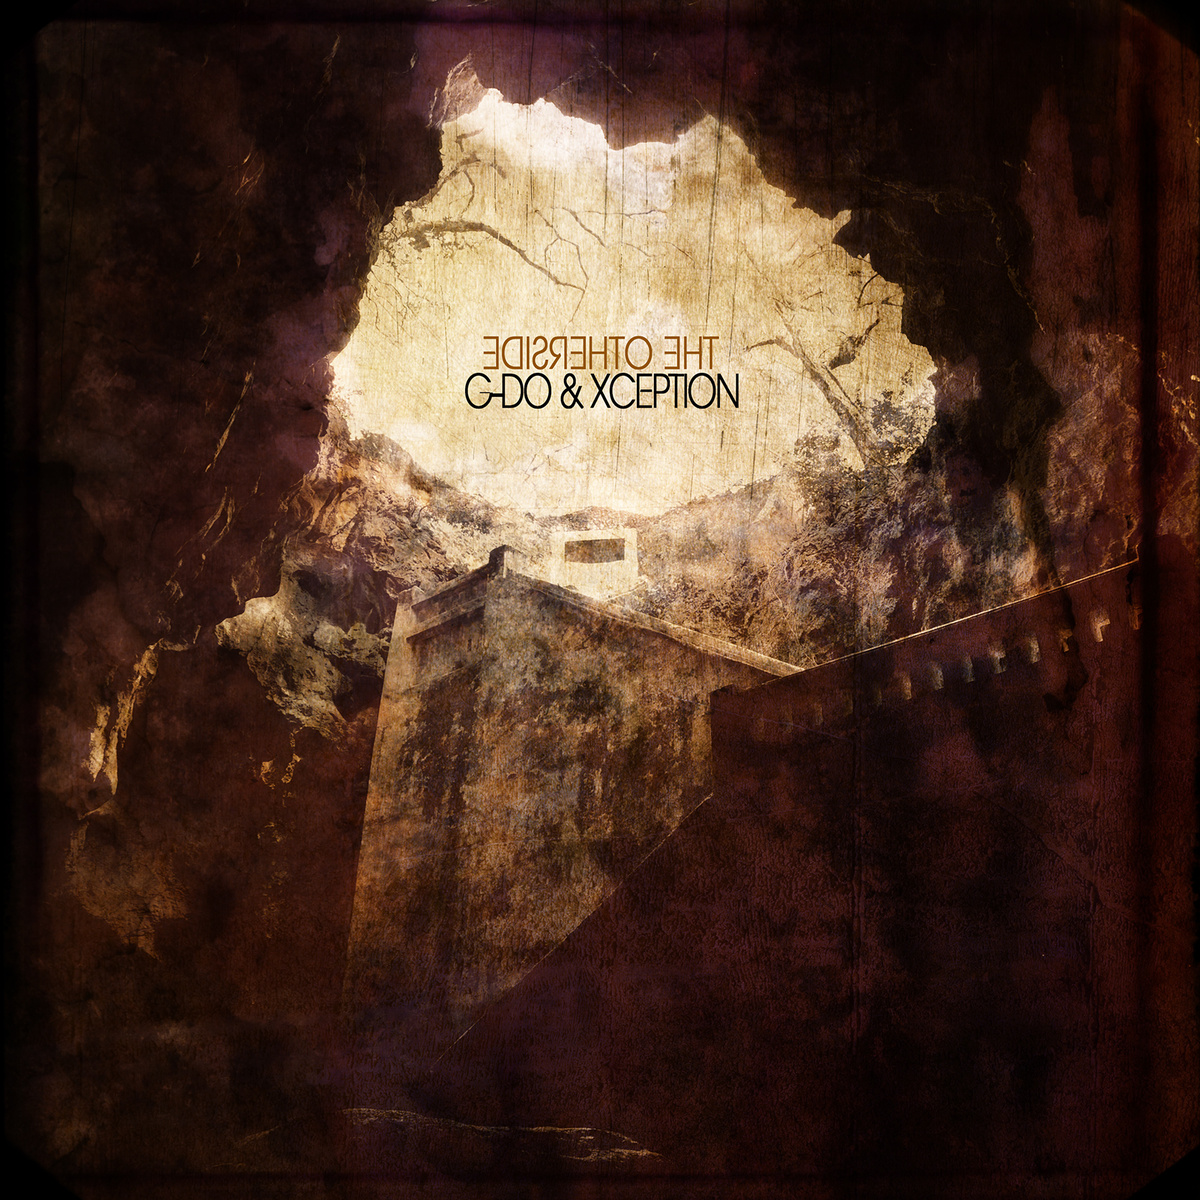 Free Download: G-DO & Xception – The Otherside